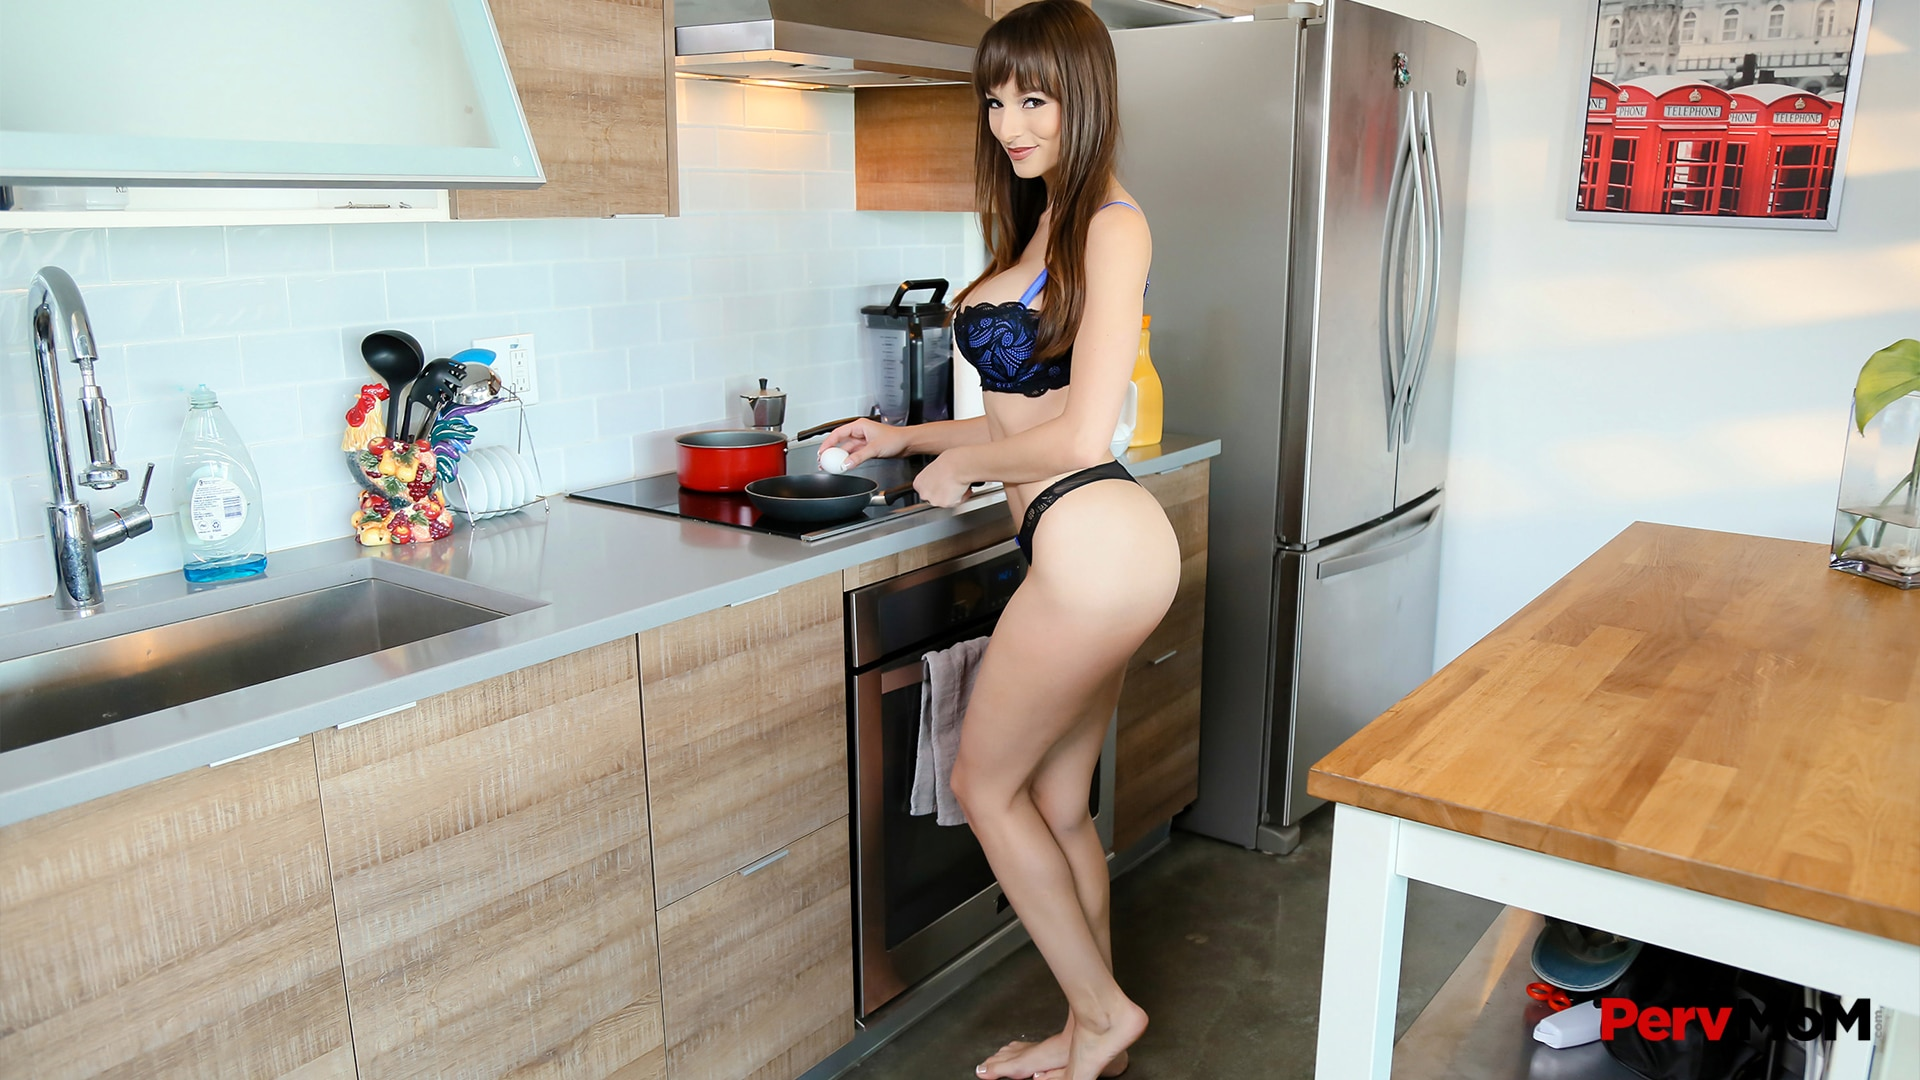 PervMom - Ready To Fuck In the Kitchen